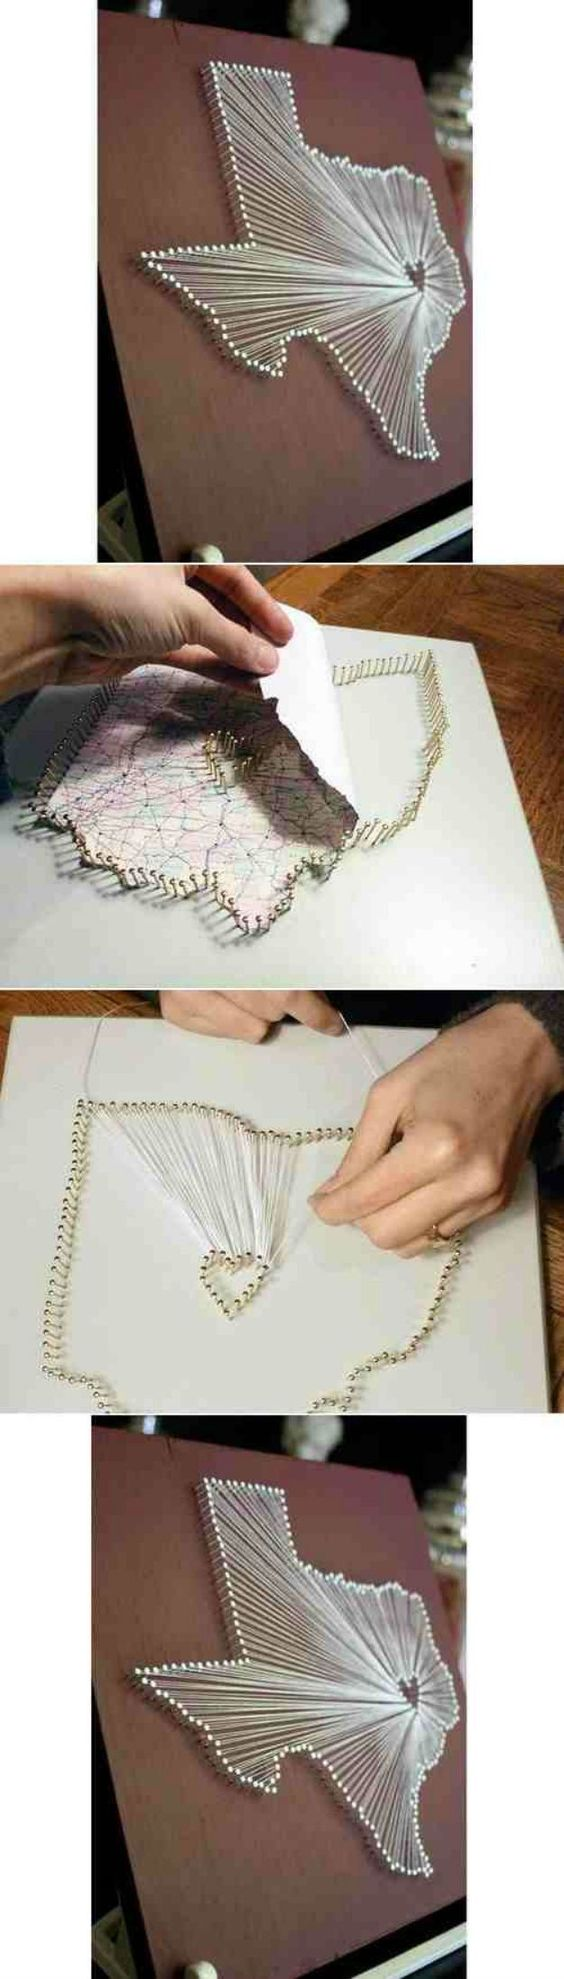 35 DIY String Art Ideas & Tutorials for Your Home Decoration ...